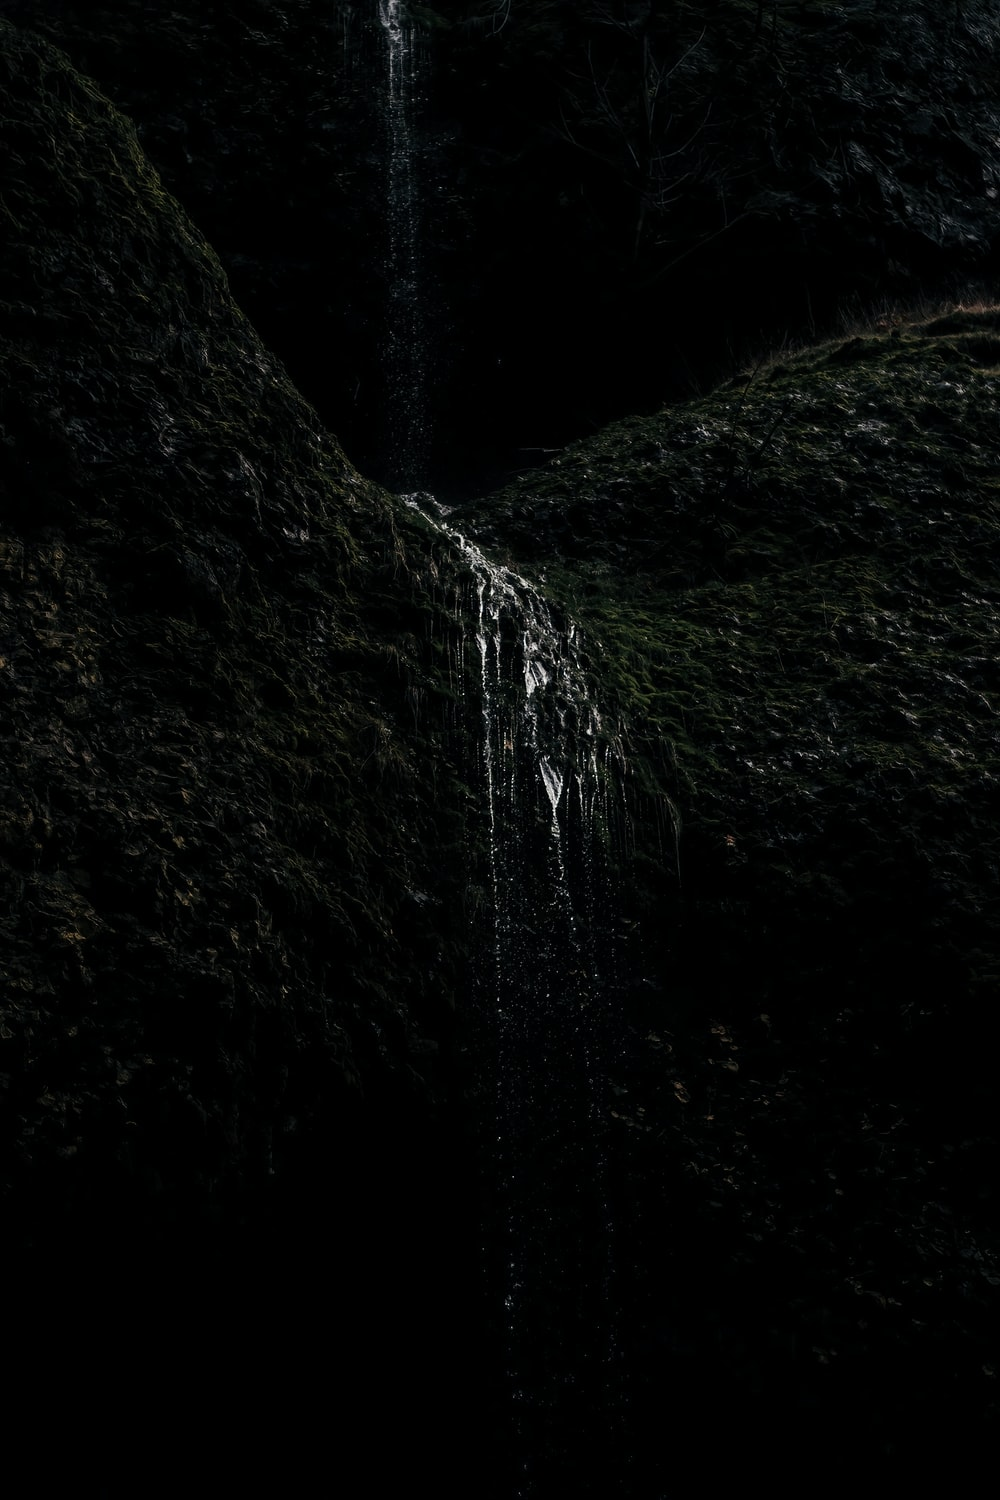 water falls in the middle of green moss